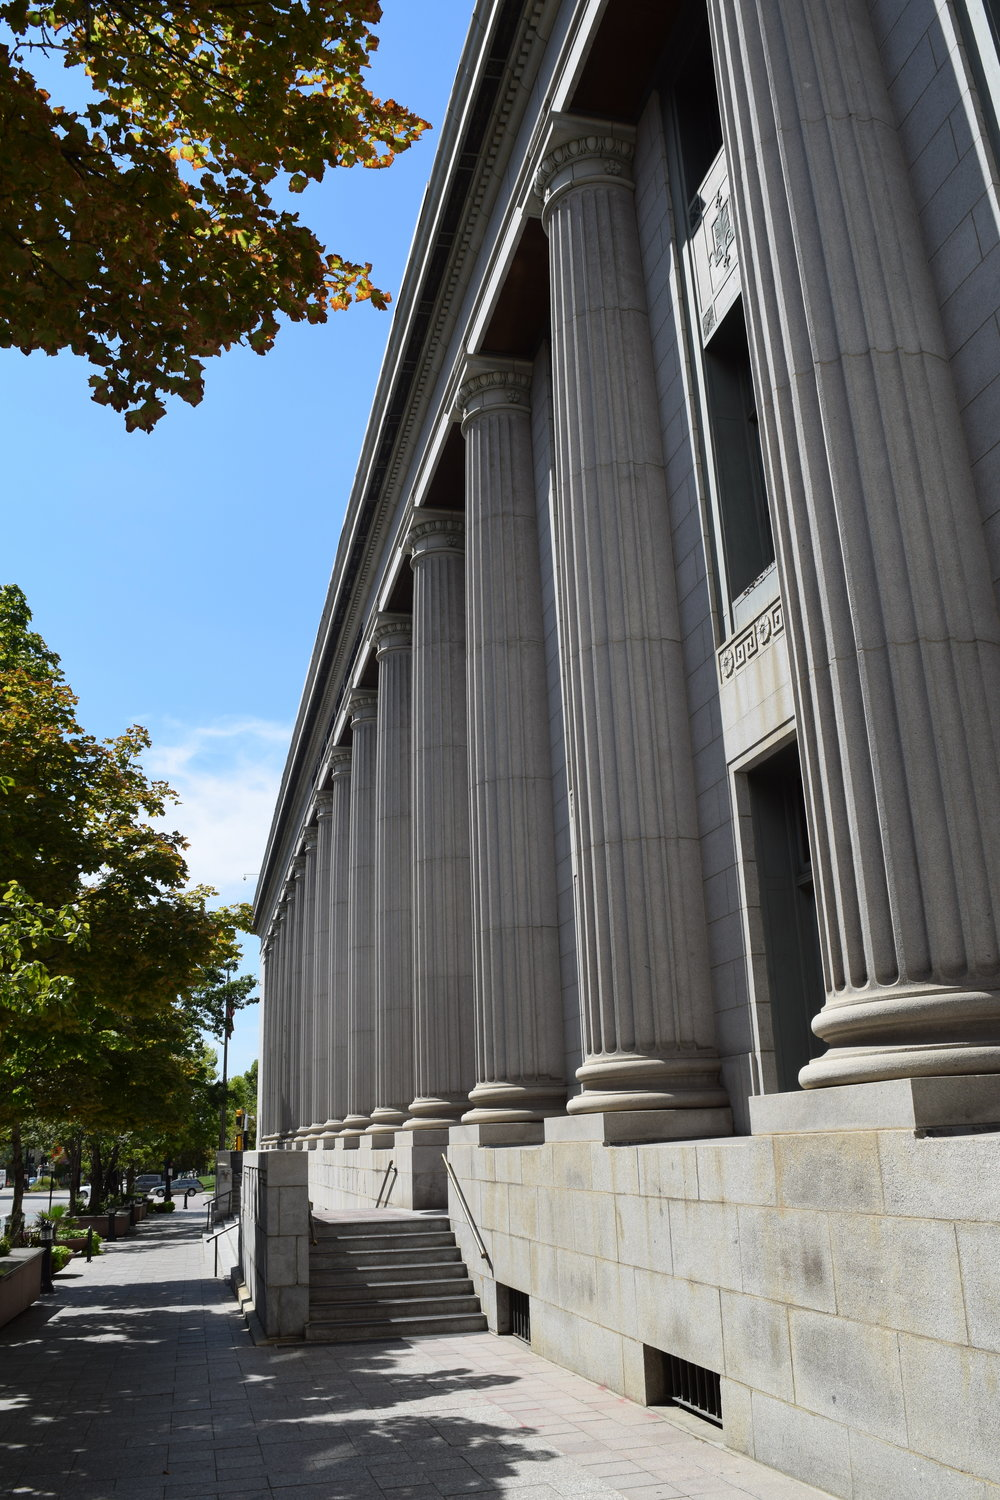 The old federal courthouse in Salt Lake City, Utah.